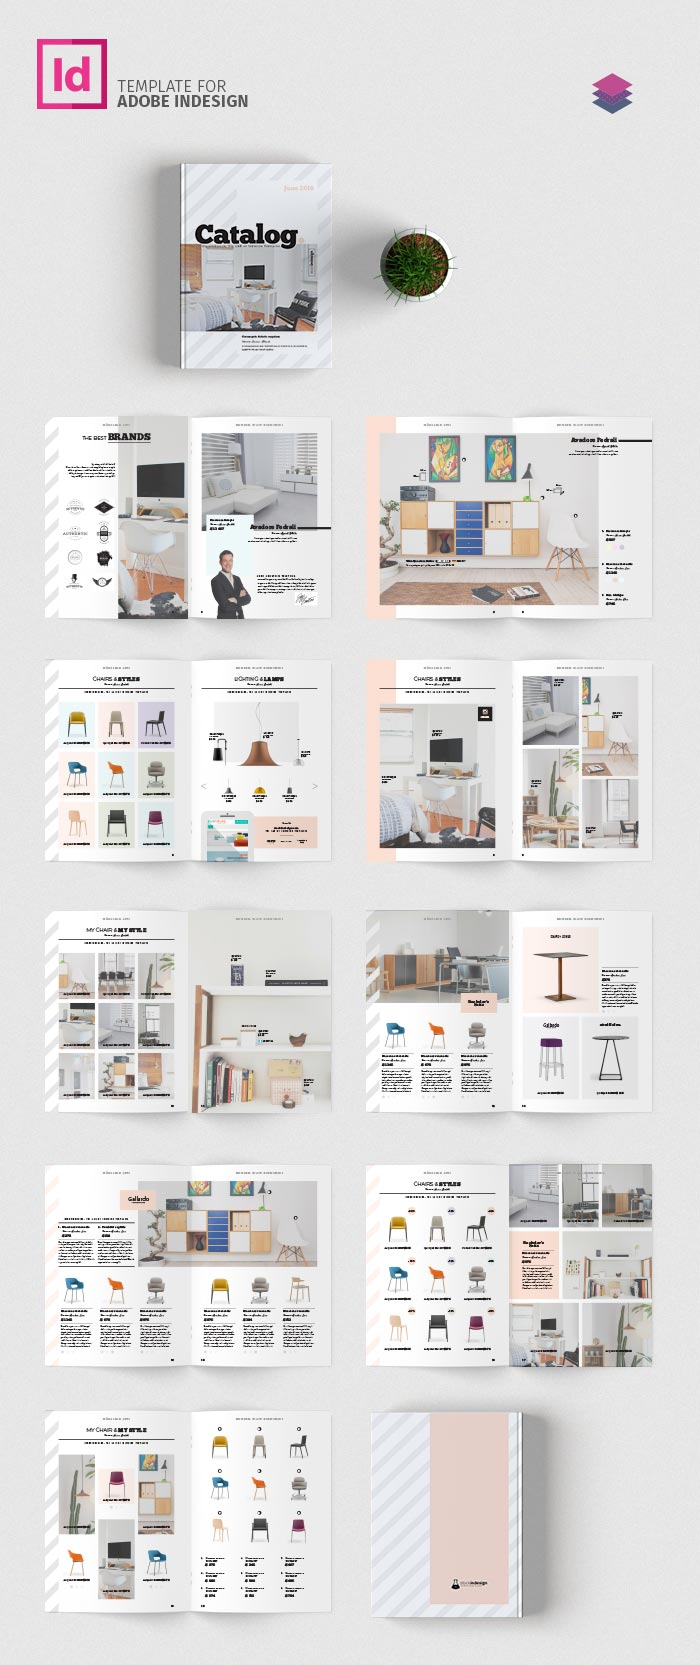 Product Catalog Template | Adobe InDesign Templates